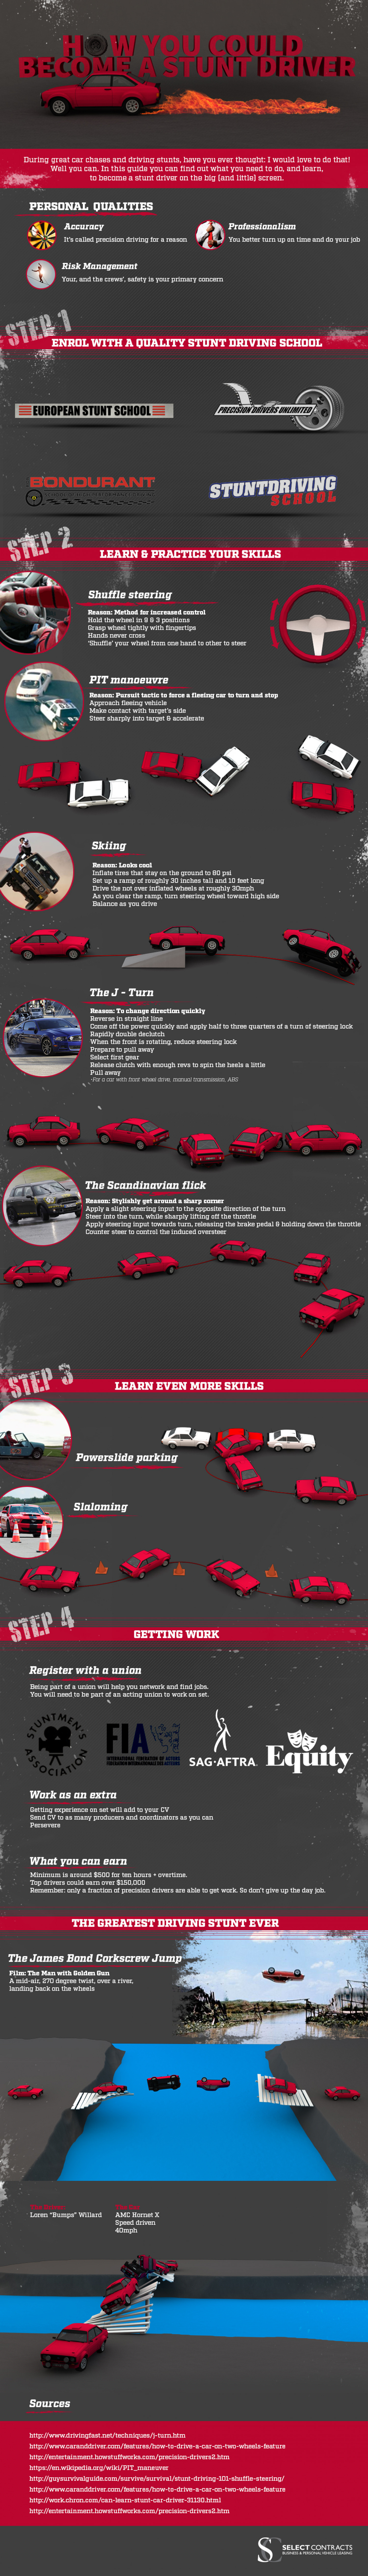 how could you become a stunt driver Infographic